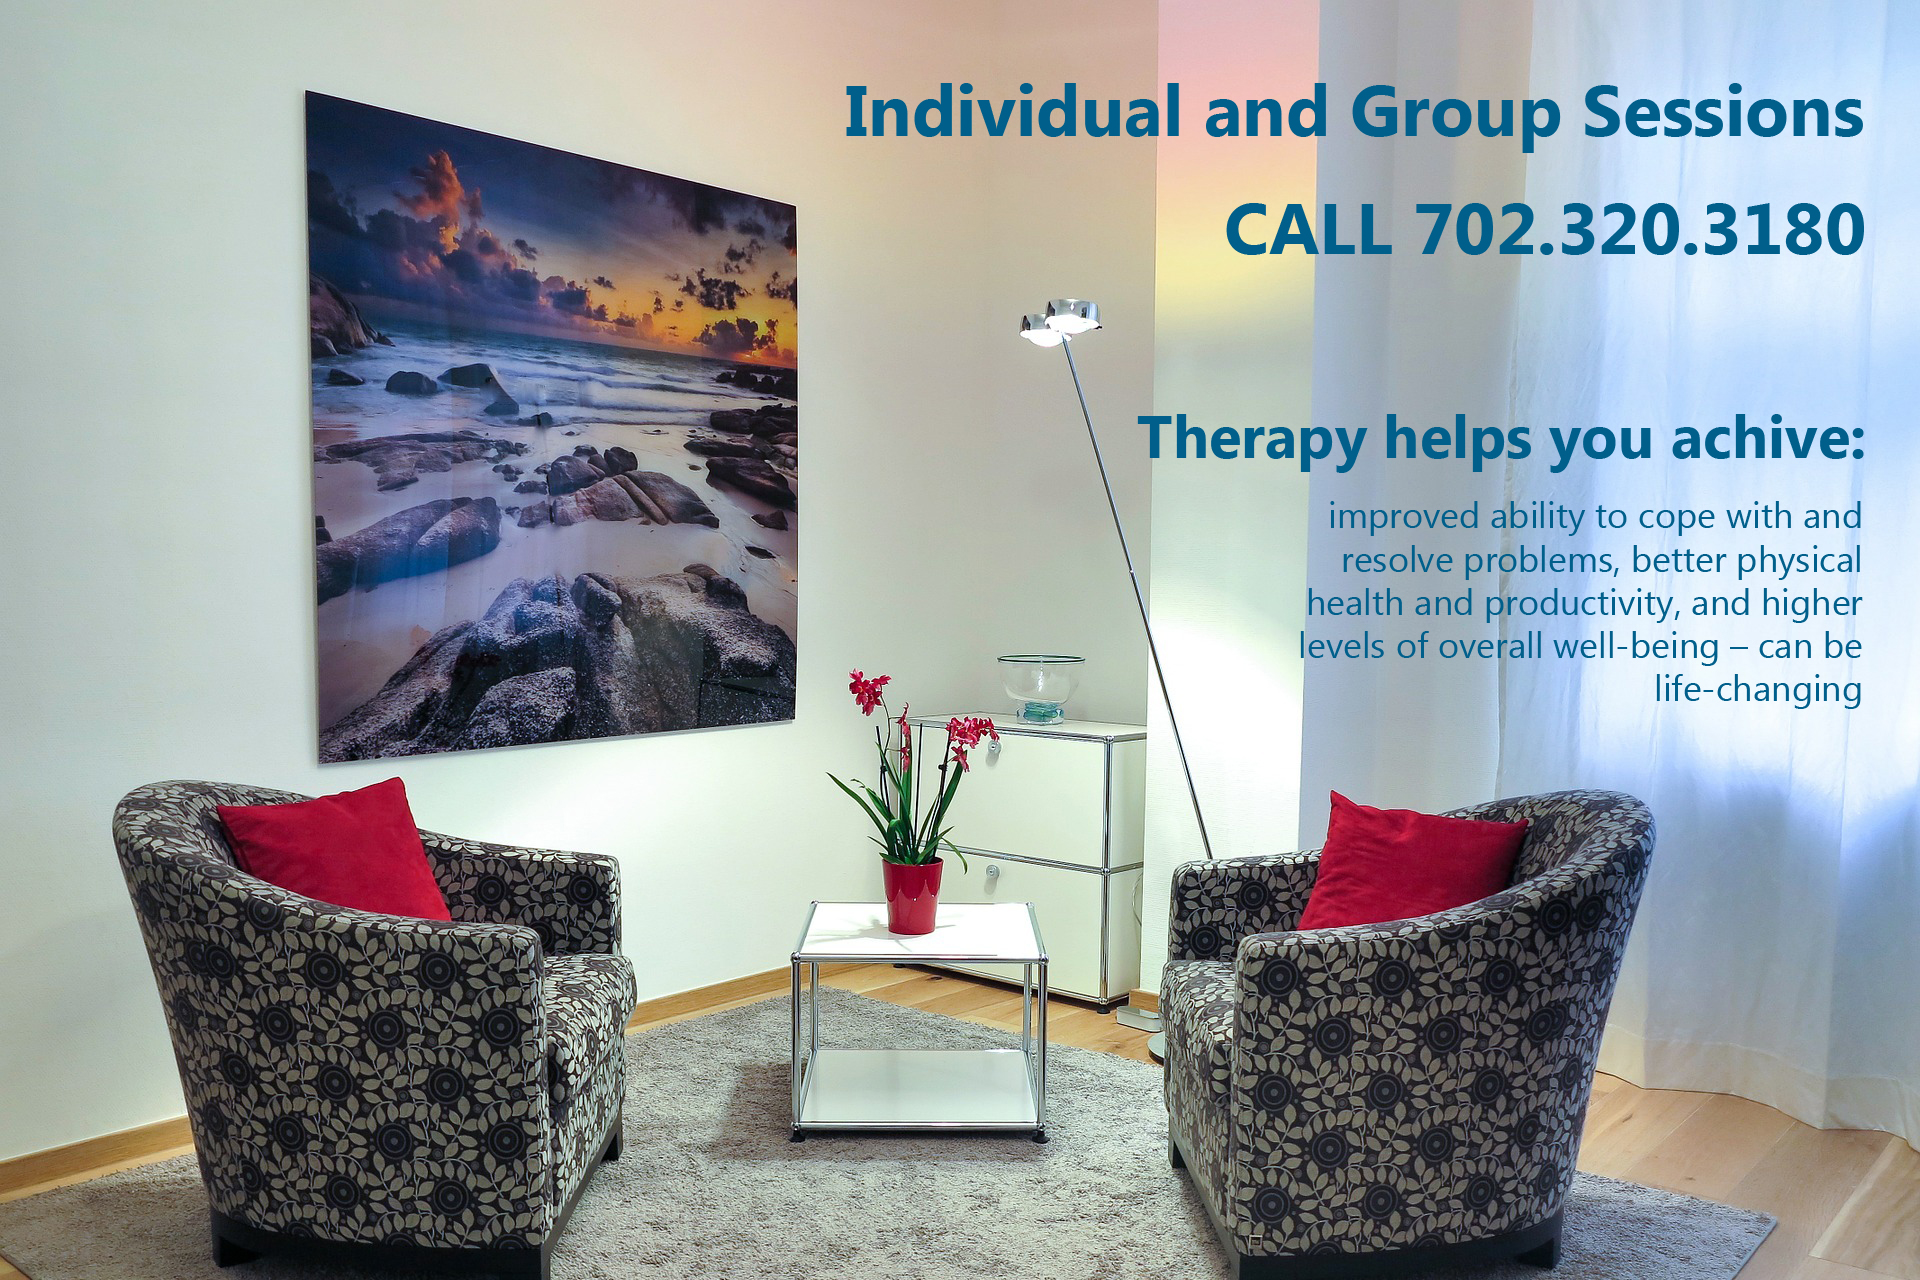 Individual and group therapy sessions and counseling at Las Vegas counseling office location